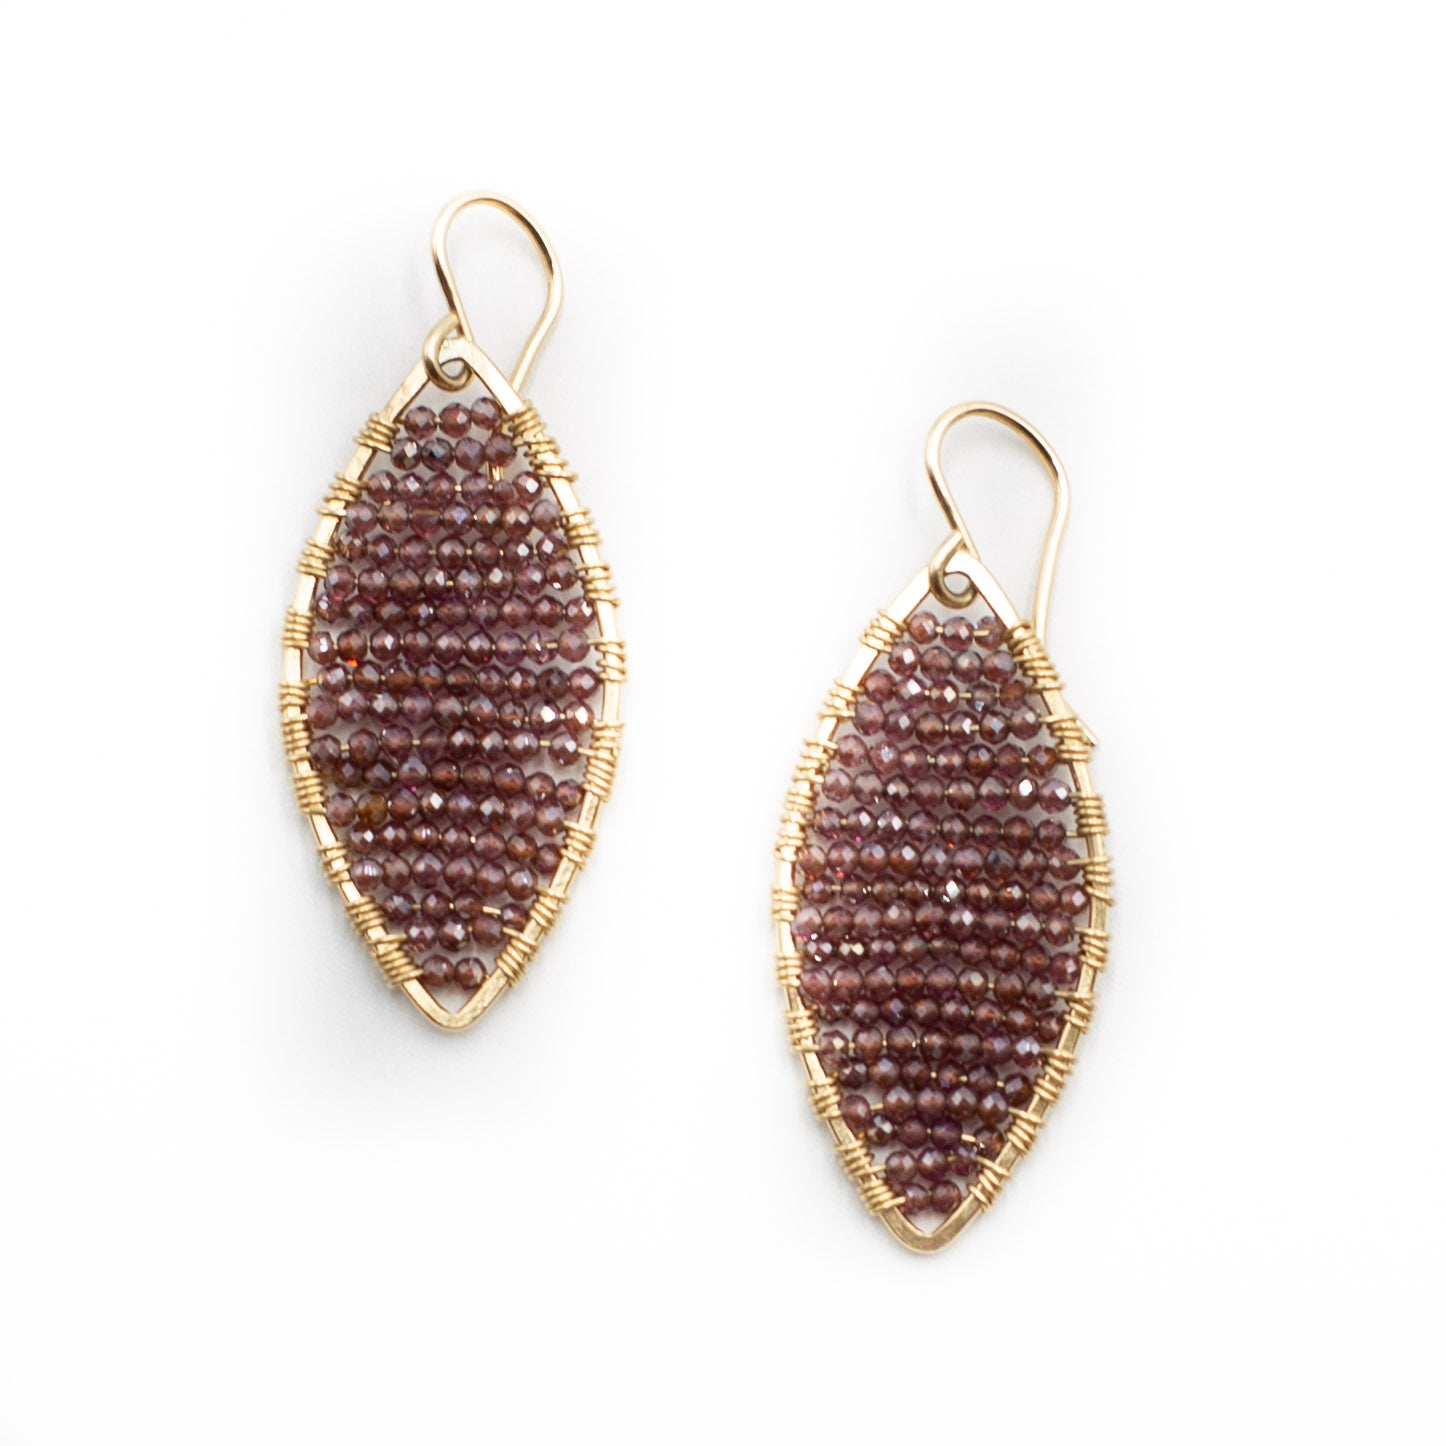 Marquis Shaped Earrings